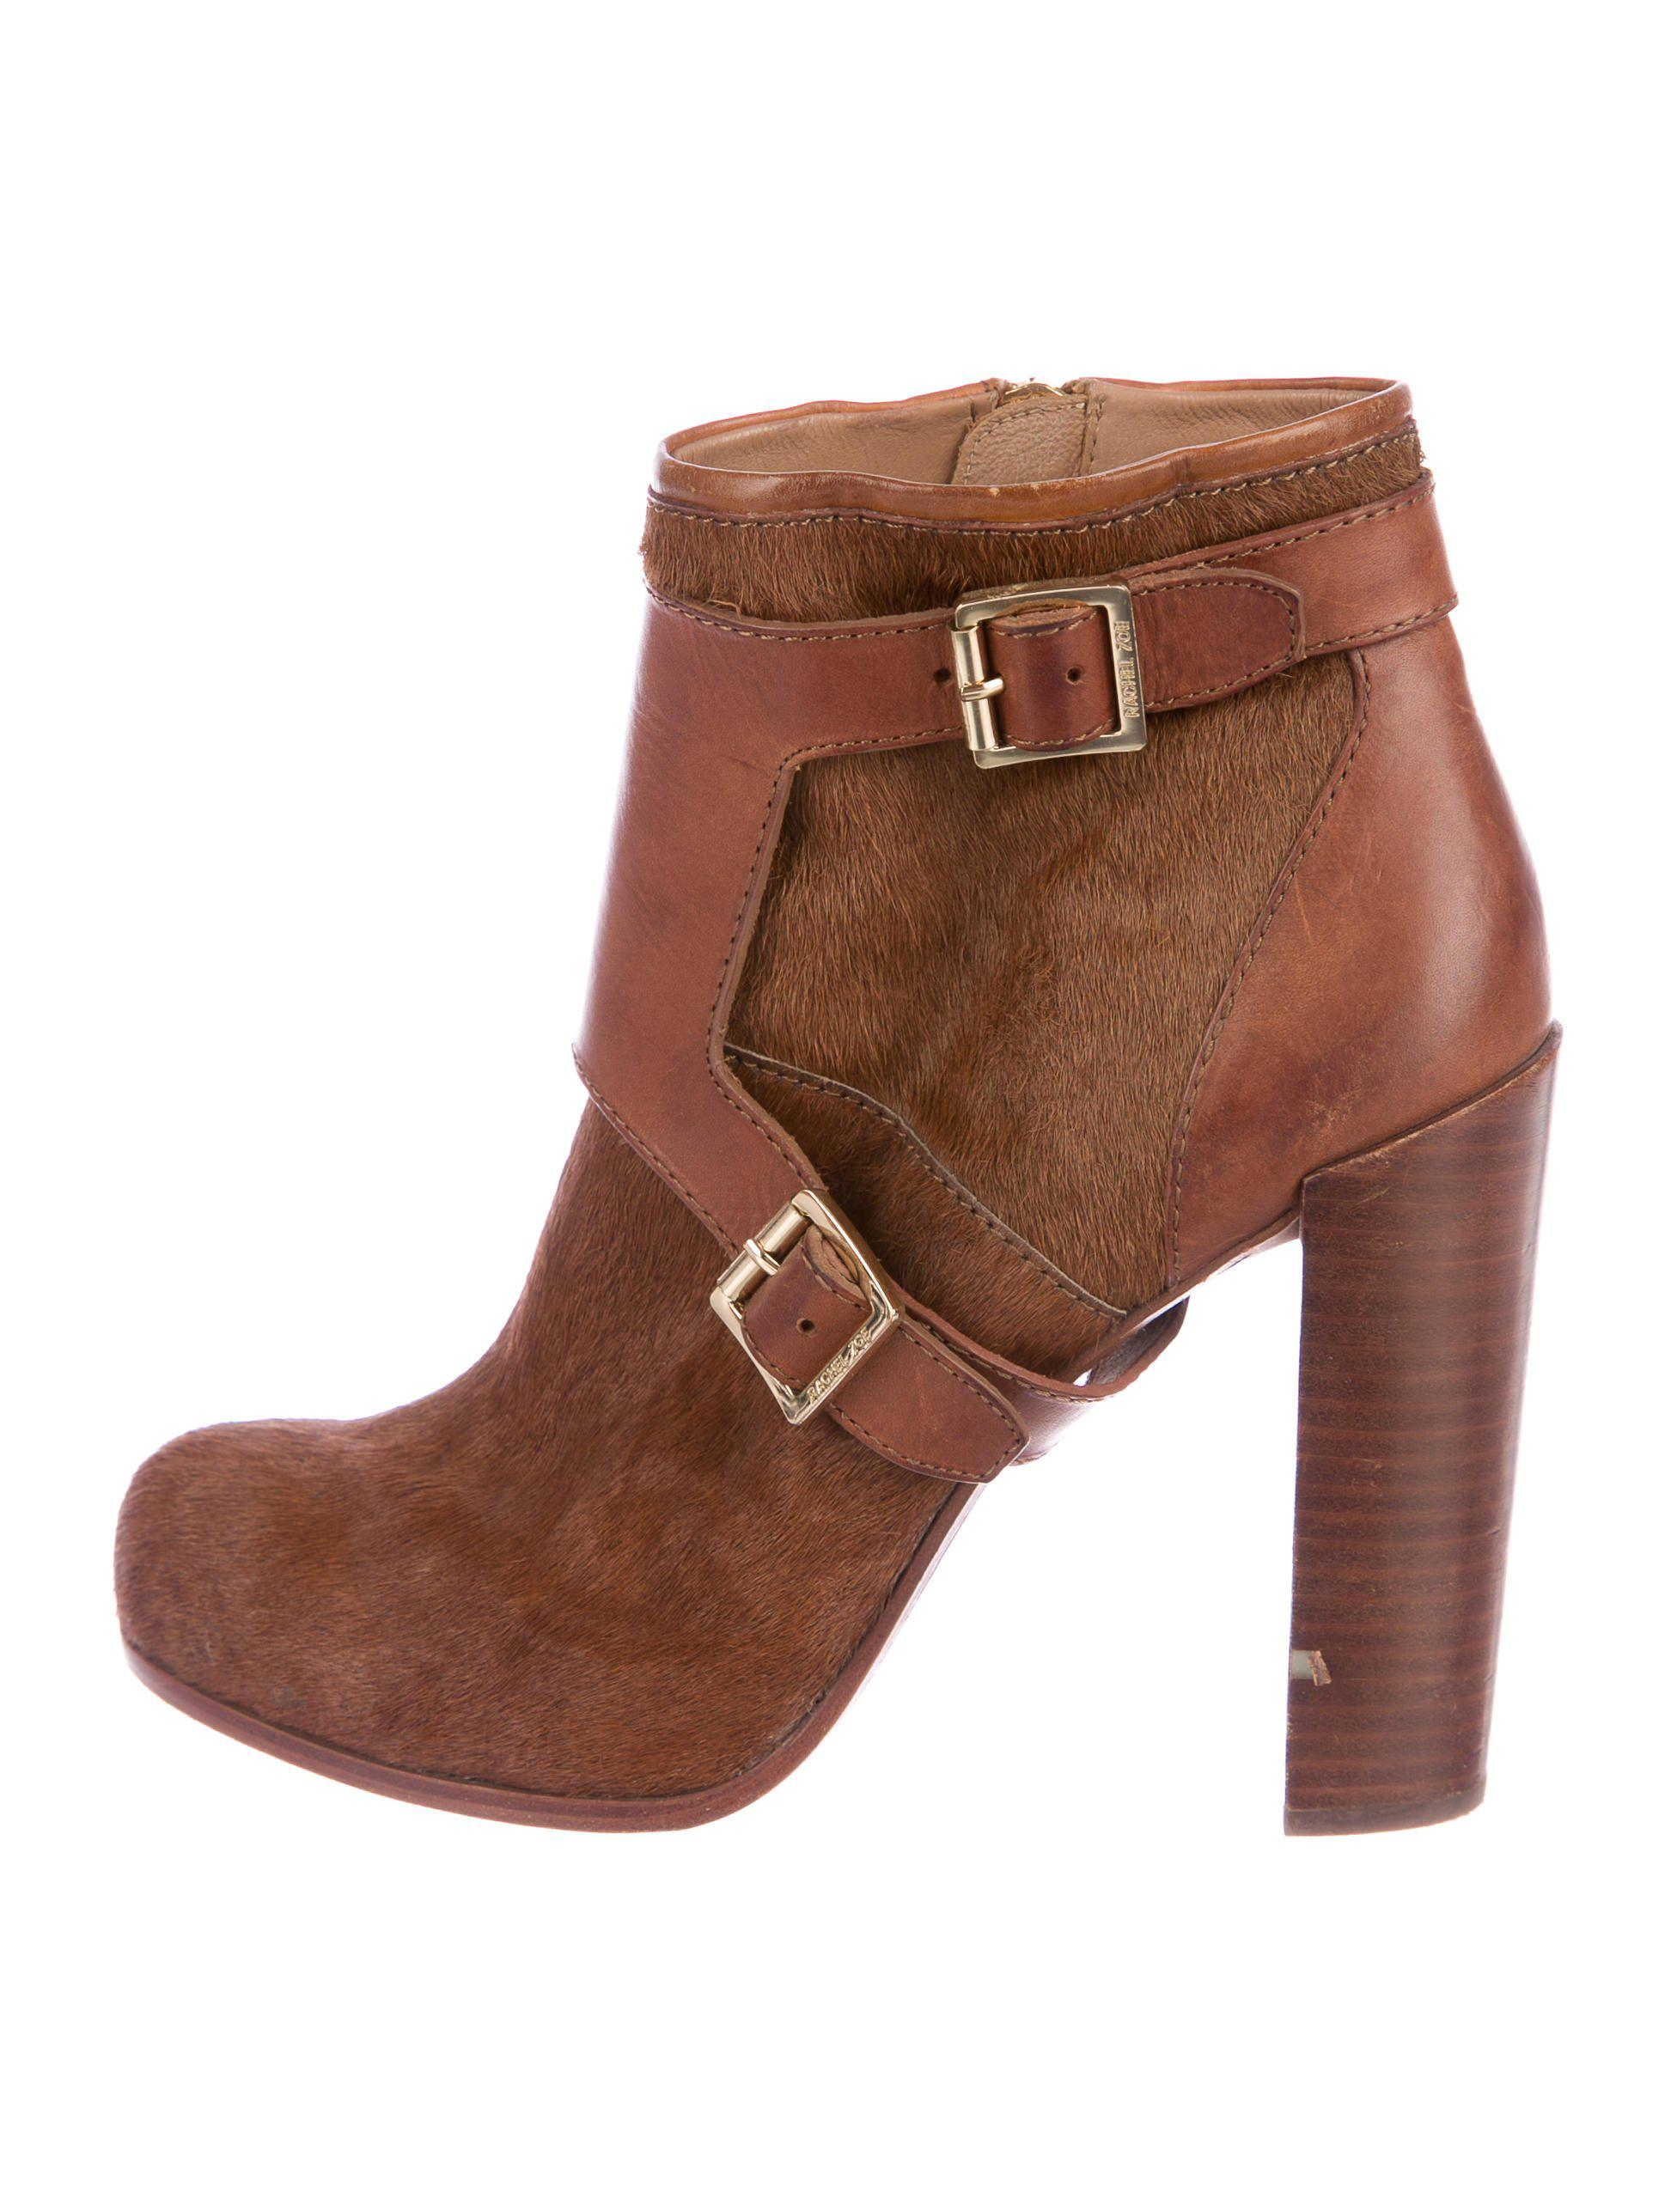 outlet store Rachel Zoe Ponyhair Round-Toe Booties cheap sale with paypal eastbay sale online ACjiksY